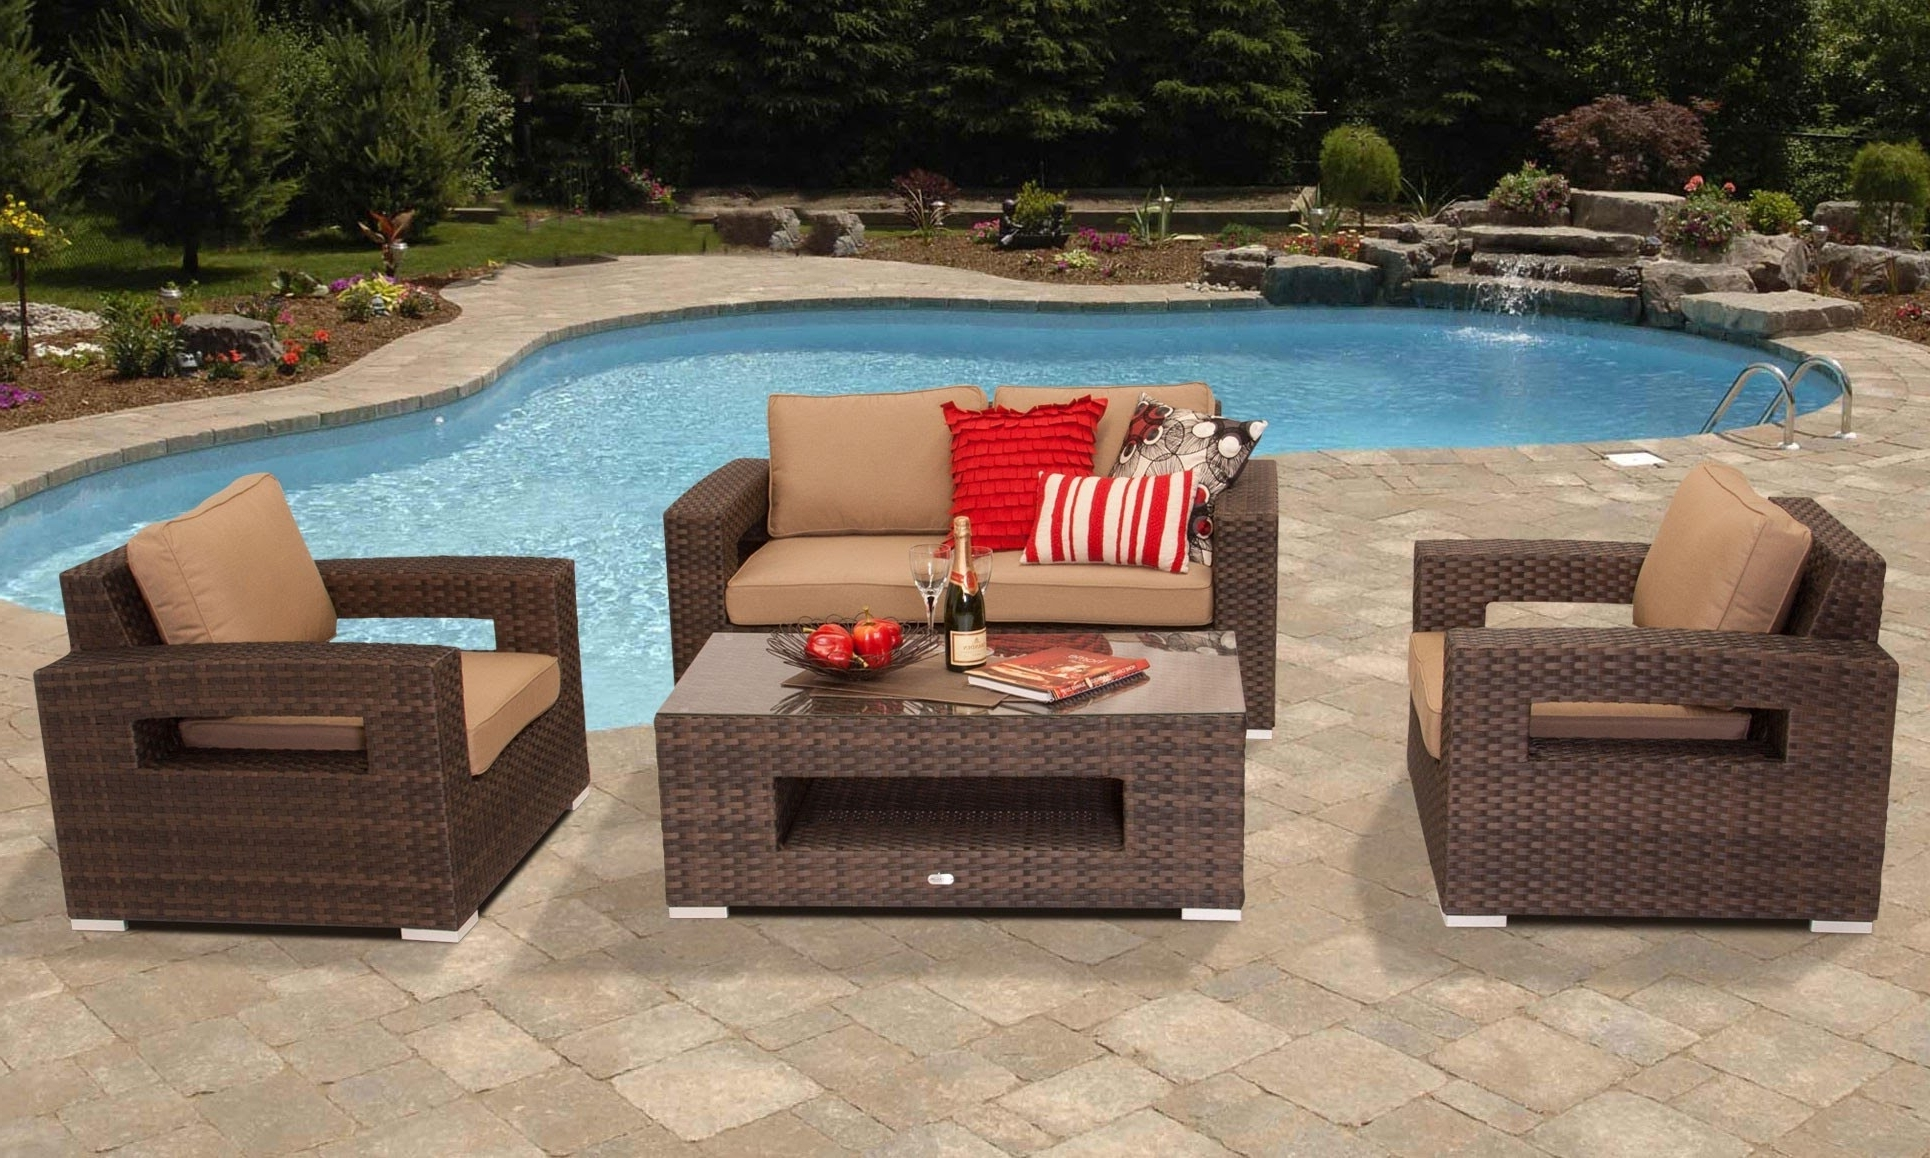 Cushions 5 Random 2 Sunbrella Patio Furniture Cushions For Well Known Sunbrella Patio Conversation Sets (View 5 of 15)